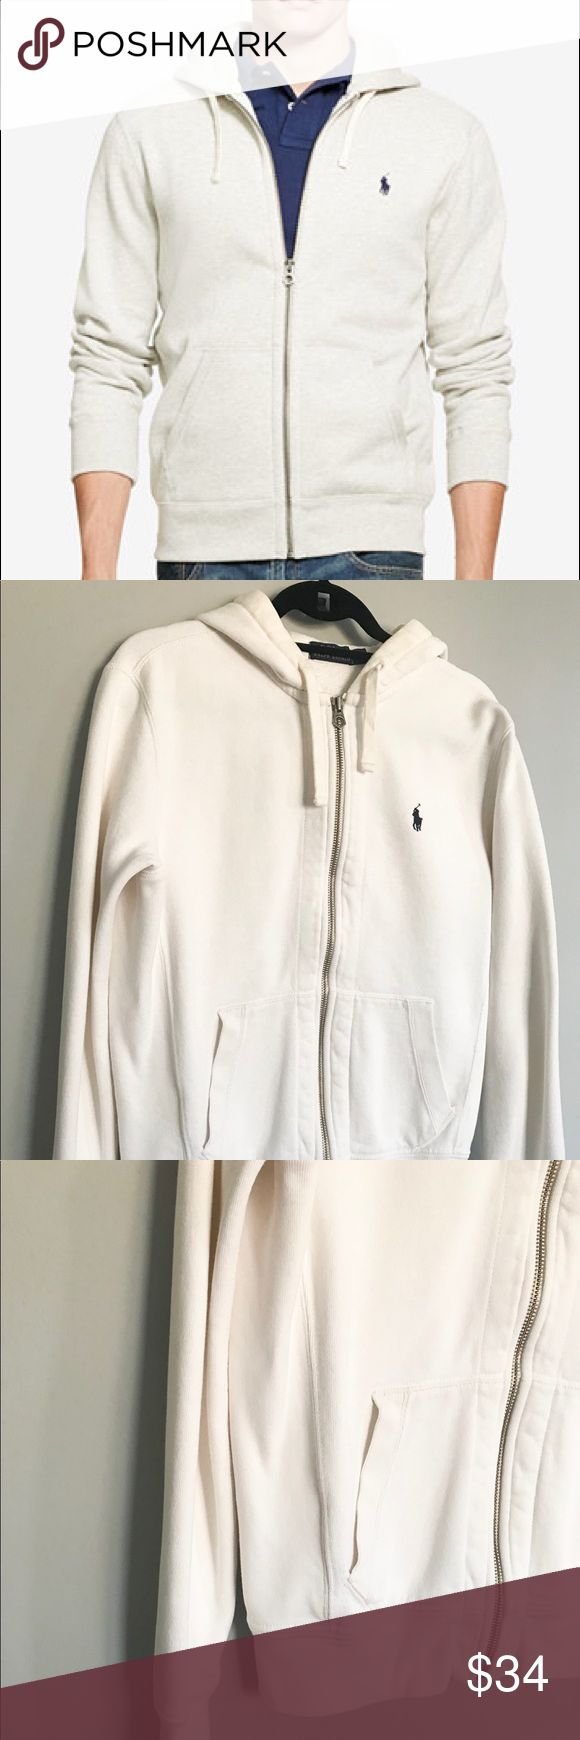 Polo Ralph Lauren Men's Hoodie White Great worn condition this Polo Ralph Lauren Hoodie is a basic wardrobe staple. There is slight discoloring at the neckline and top of the Hoodie. The price reflects this small flaw.   Classic Fitting Full Zip in soft washed cotton fleece is smooth on one side and fuzzy on the inside. Polo by Ralph Lauren Shirts Sweatshirts & Hoodies